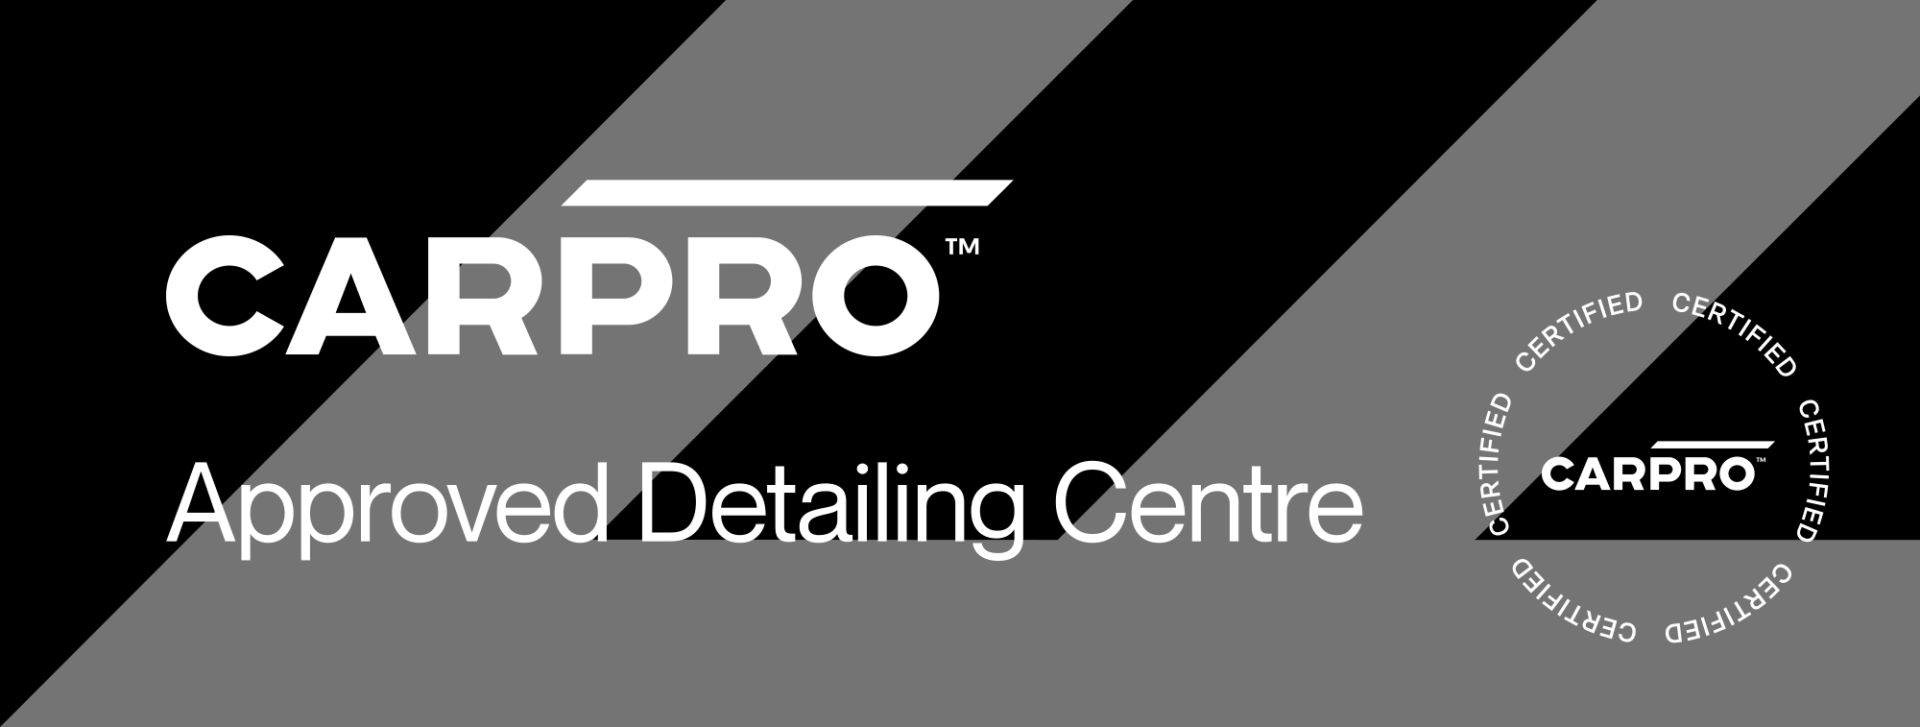 CarPro Approved Detailing Centre